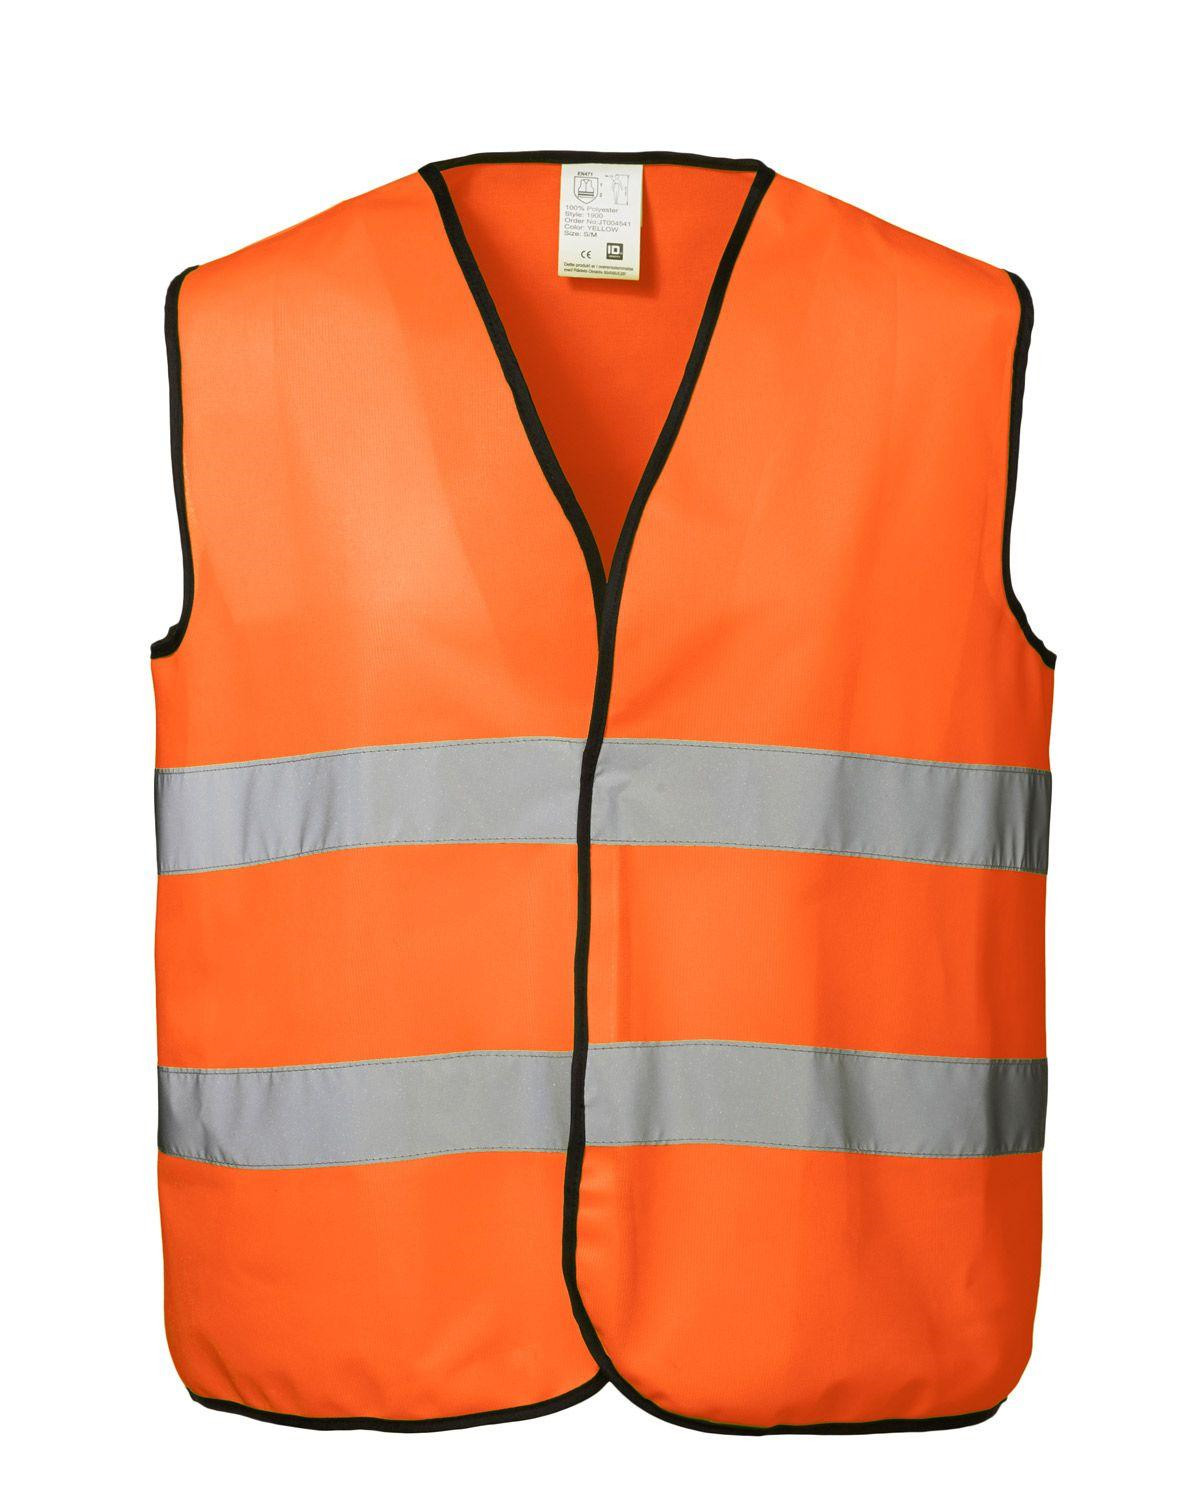 Image of   ID Sikkerhedsvest - Fluorescerende & m. Reflekser (Orange, 2XL)